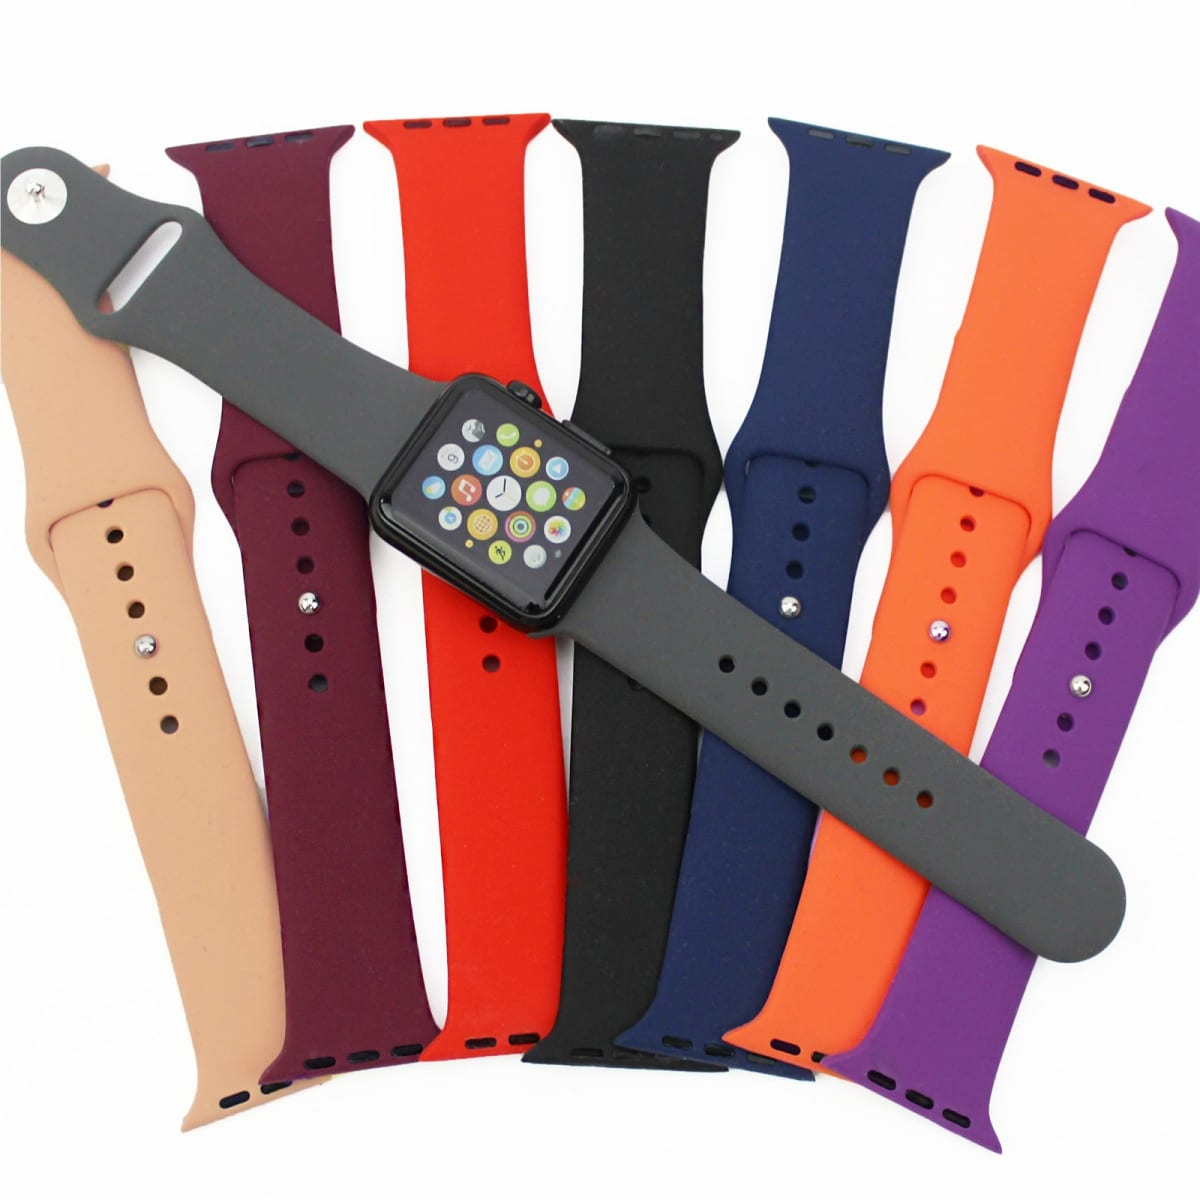 4d3d88516e37 Apple Watch Silicone Band | 21 Colors | Free Shipping | Jane